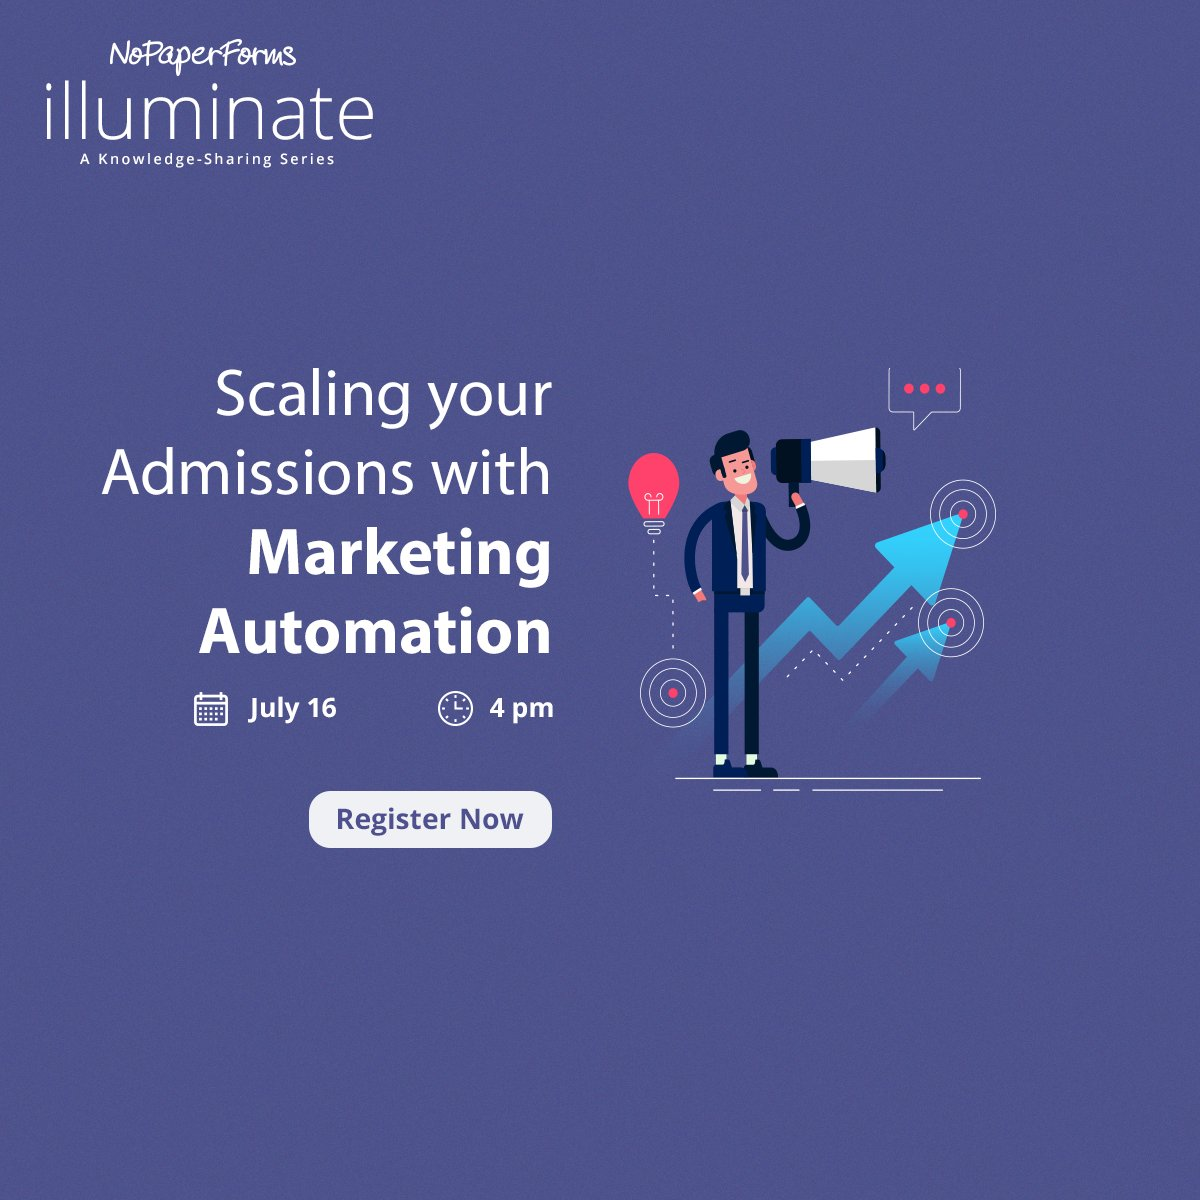 Join us this Thursday at 4 pm as our geeks share ways for you to evolve your strategies with Marketing Automation and further uncover such practices on a live product walkthrough.   Register Now: https://bit.ly/3c1jtdt  #AdmissionsUninterrupted #Illuminate #EdTechpic.twitter.com/kw4cPlb4H3